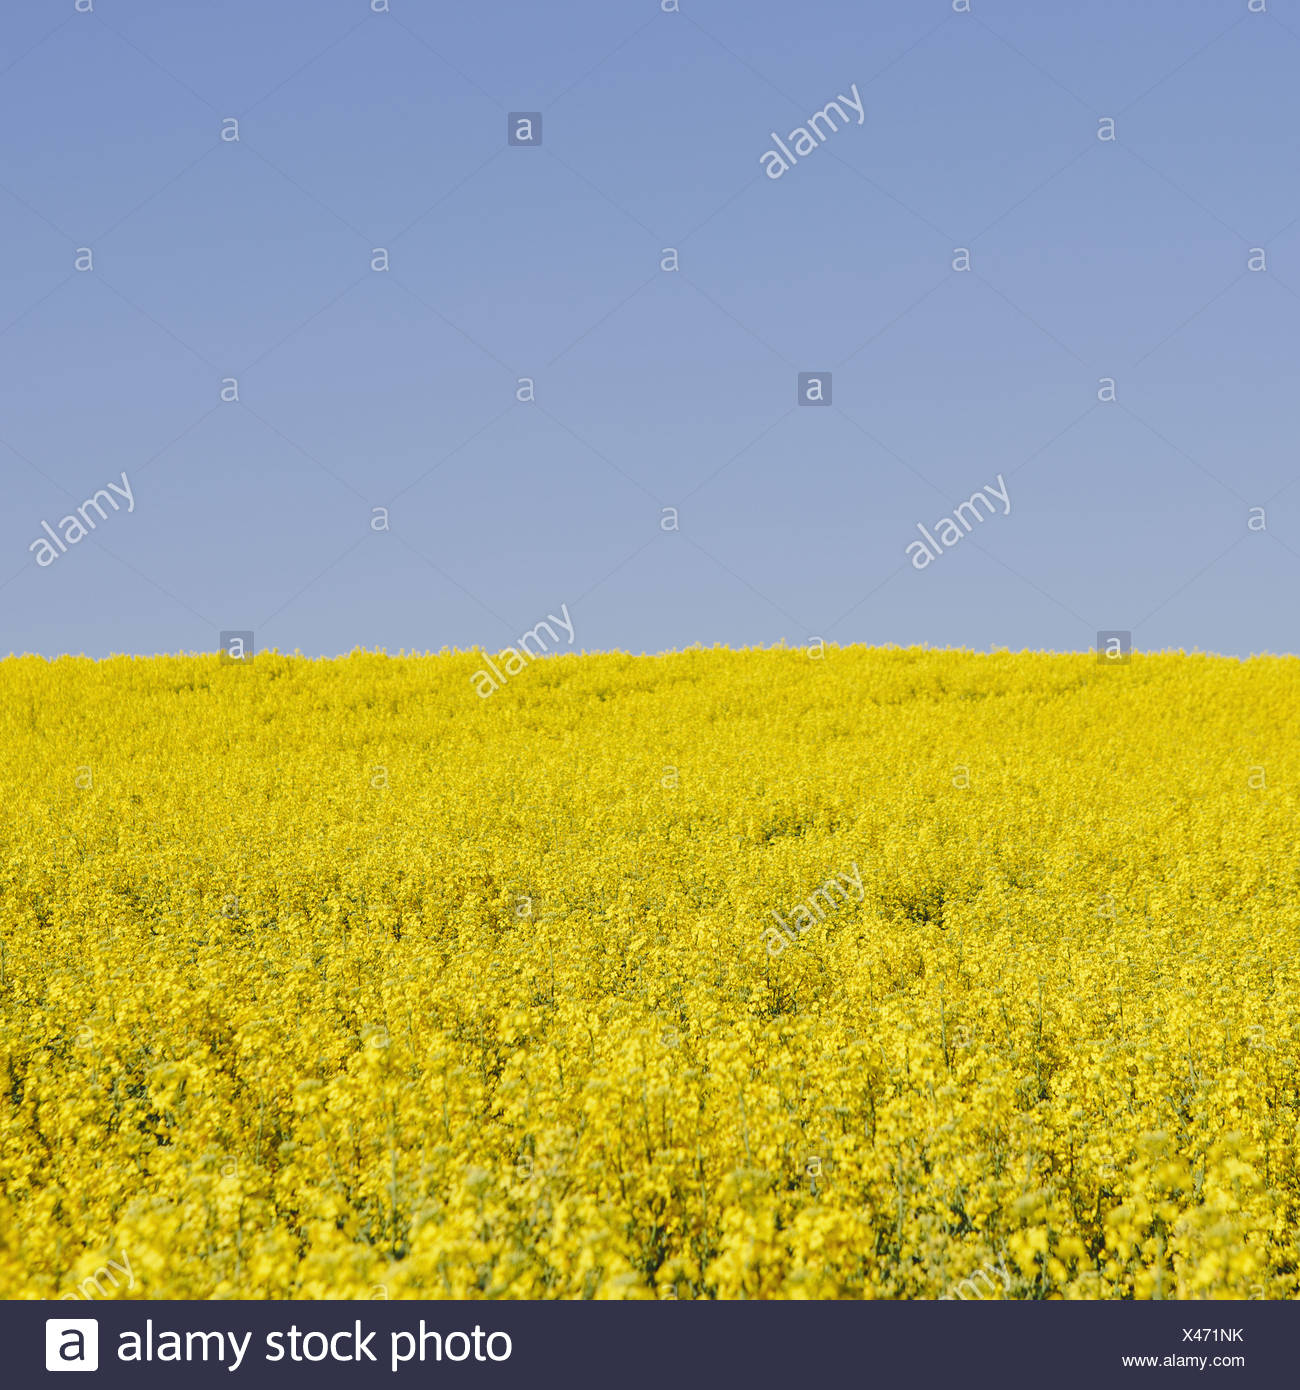 Field of blooming mustard seed plants flowering in Spring, near Pullman in Washington state. - Stock Image